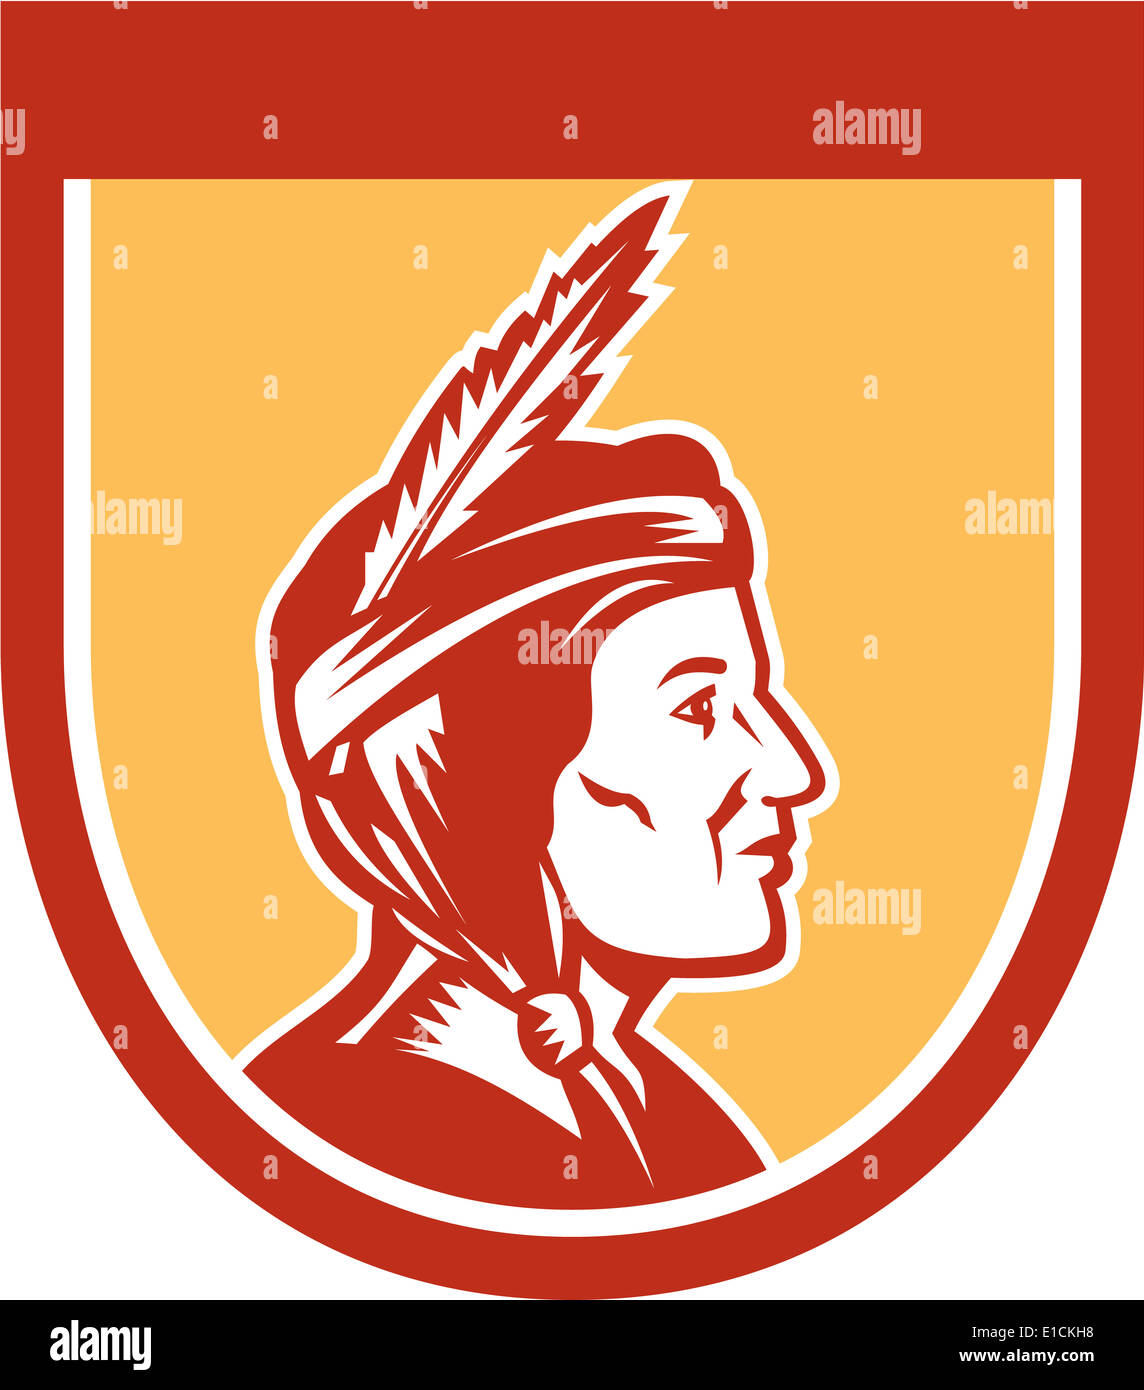 Illustration of a native american indian chief sideview with headdress set inside shield crest on isolated ackground. - Stock Image